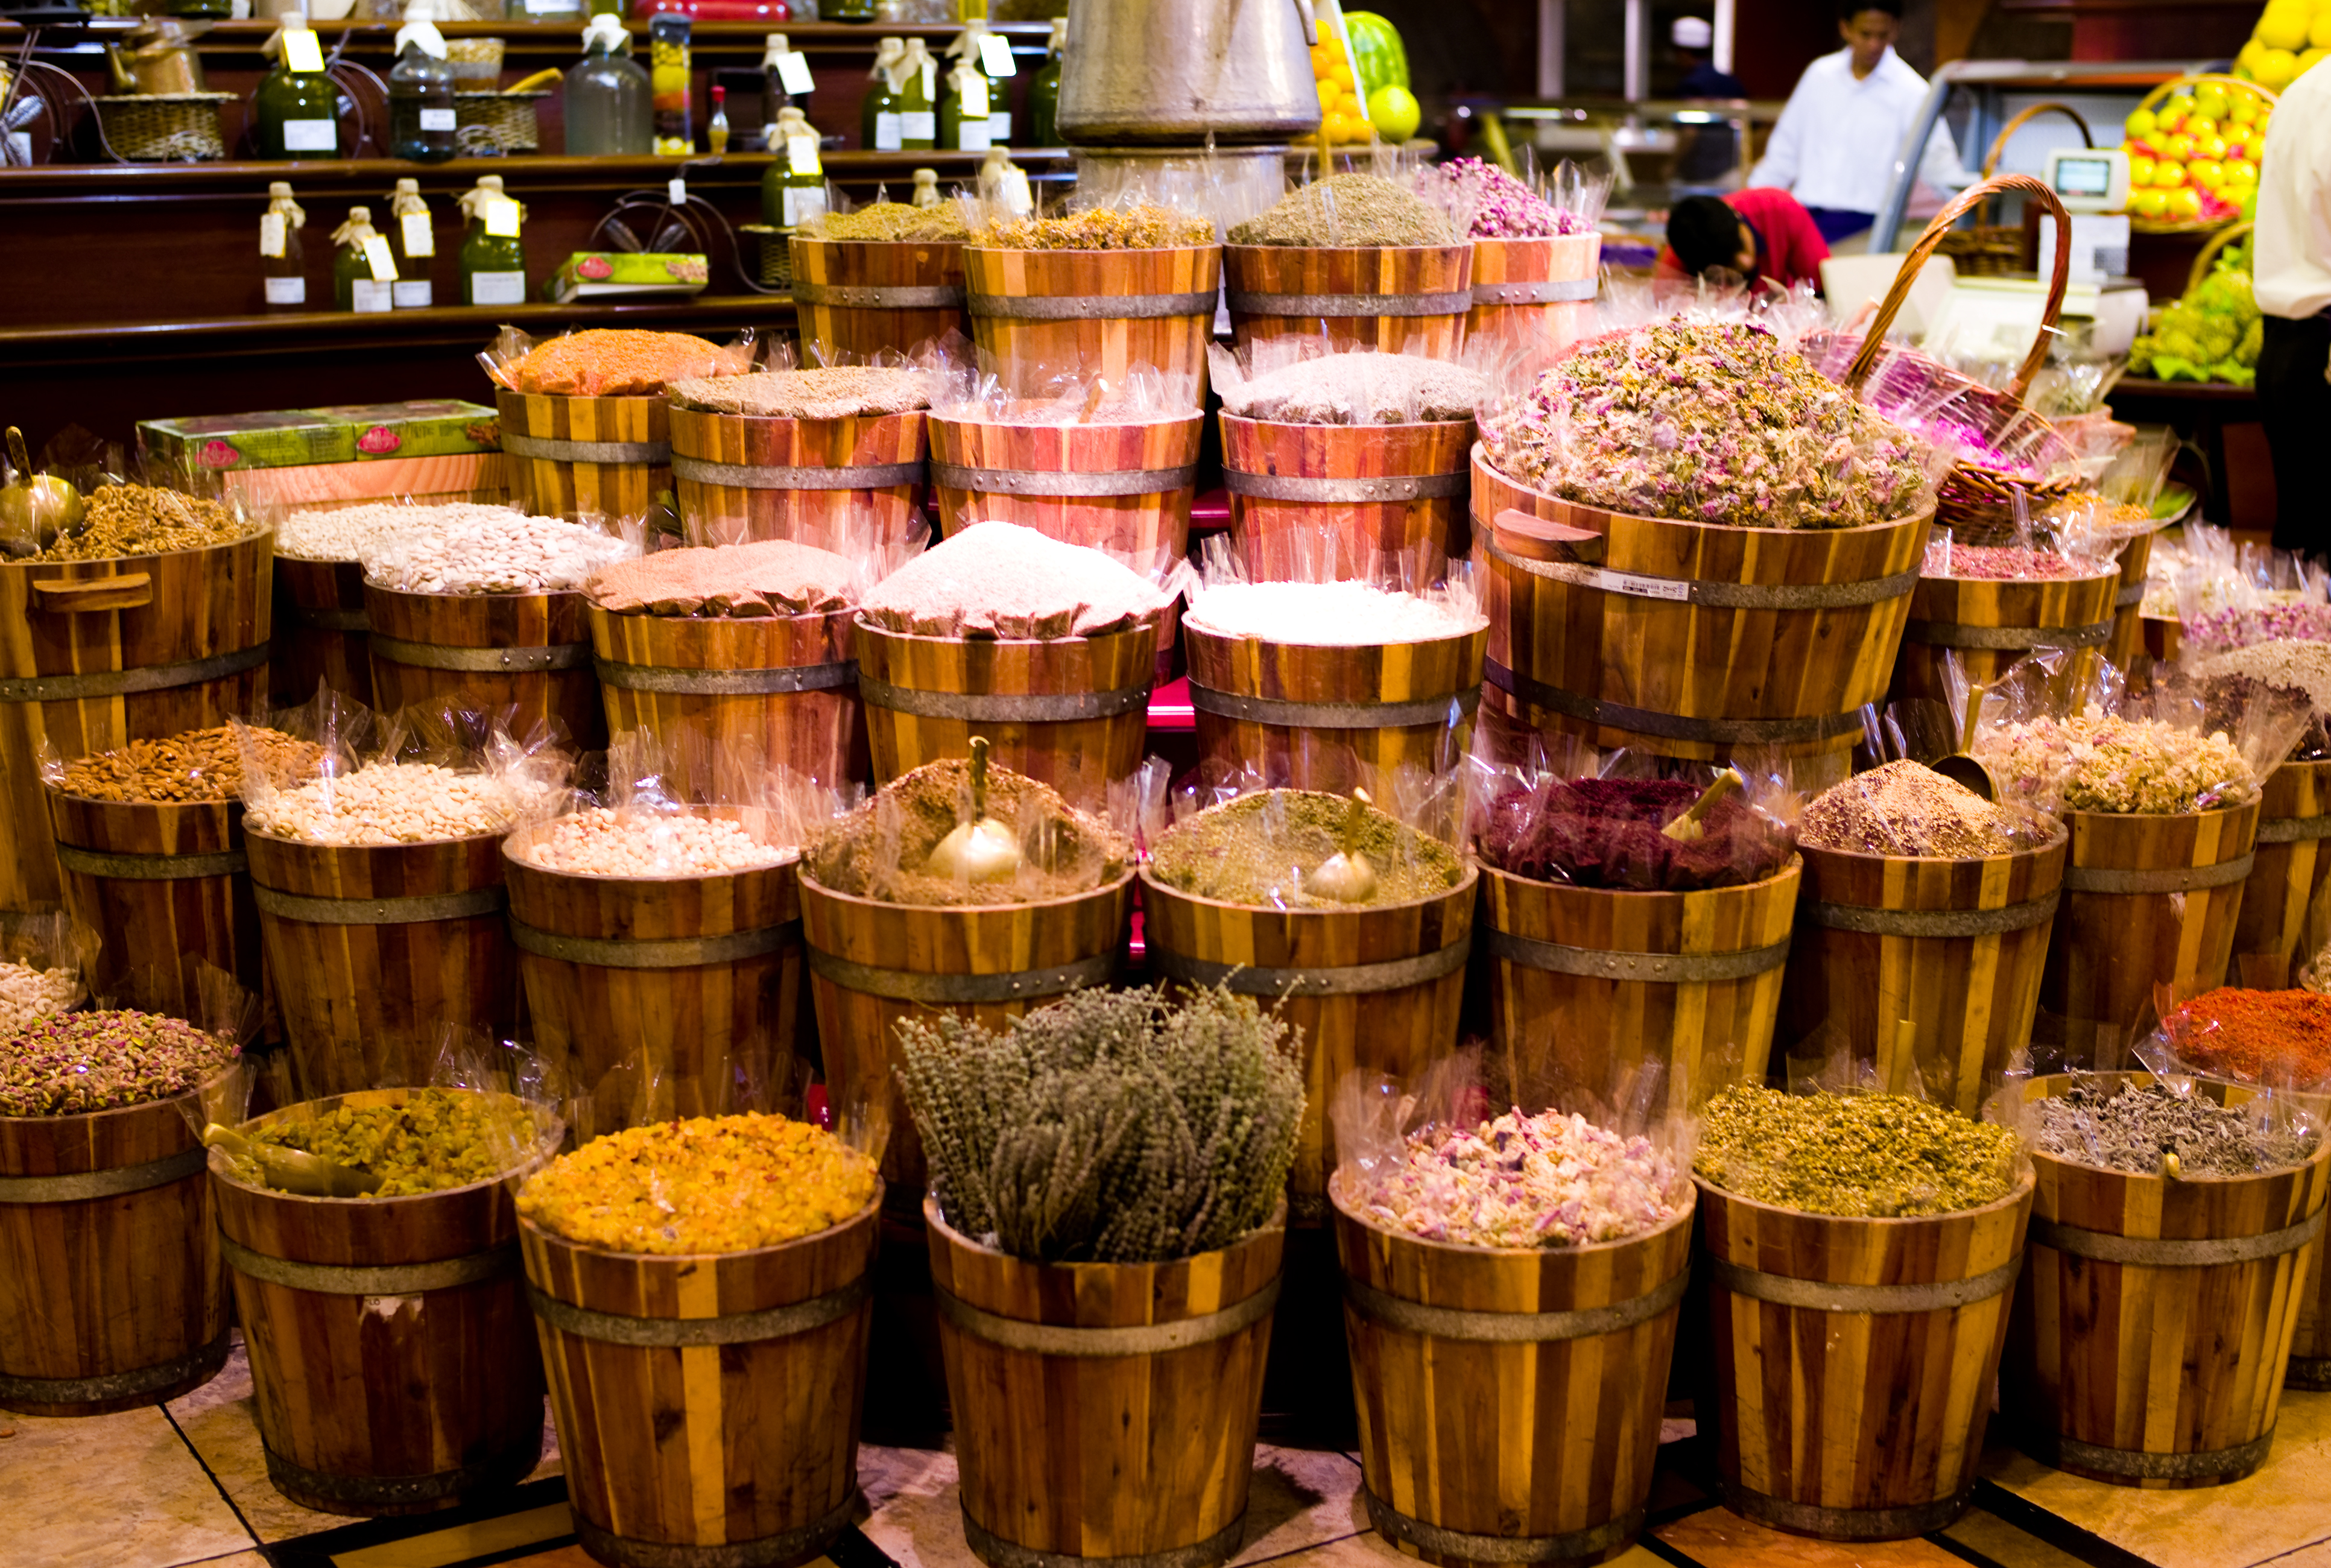 Spice Market, Middle East   Egyptian food, Middle eastern ...   Middle East Spice Market